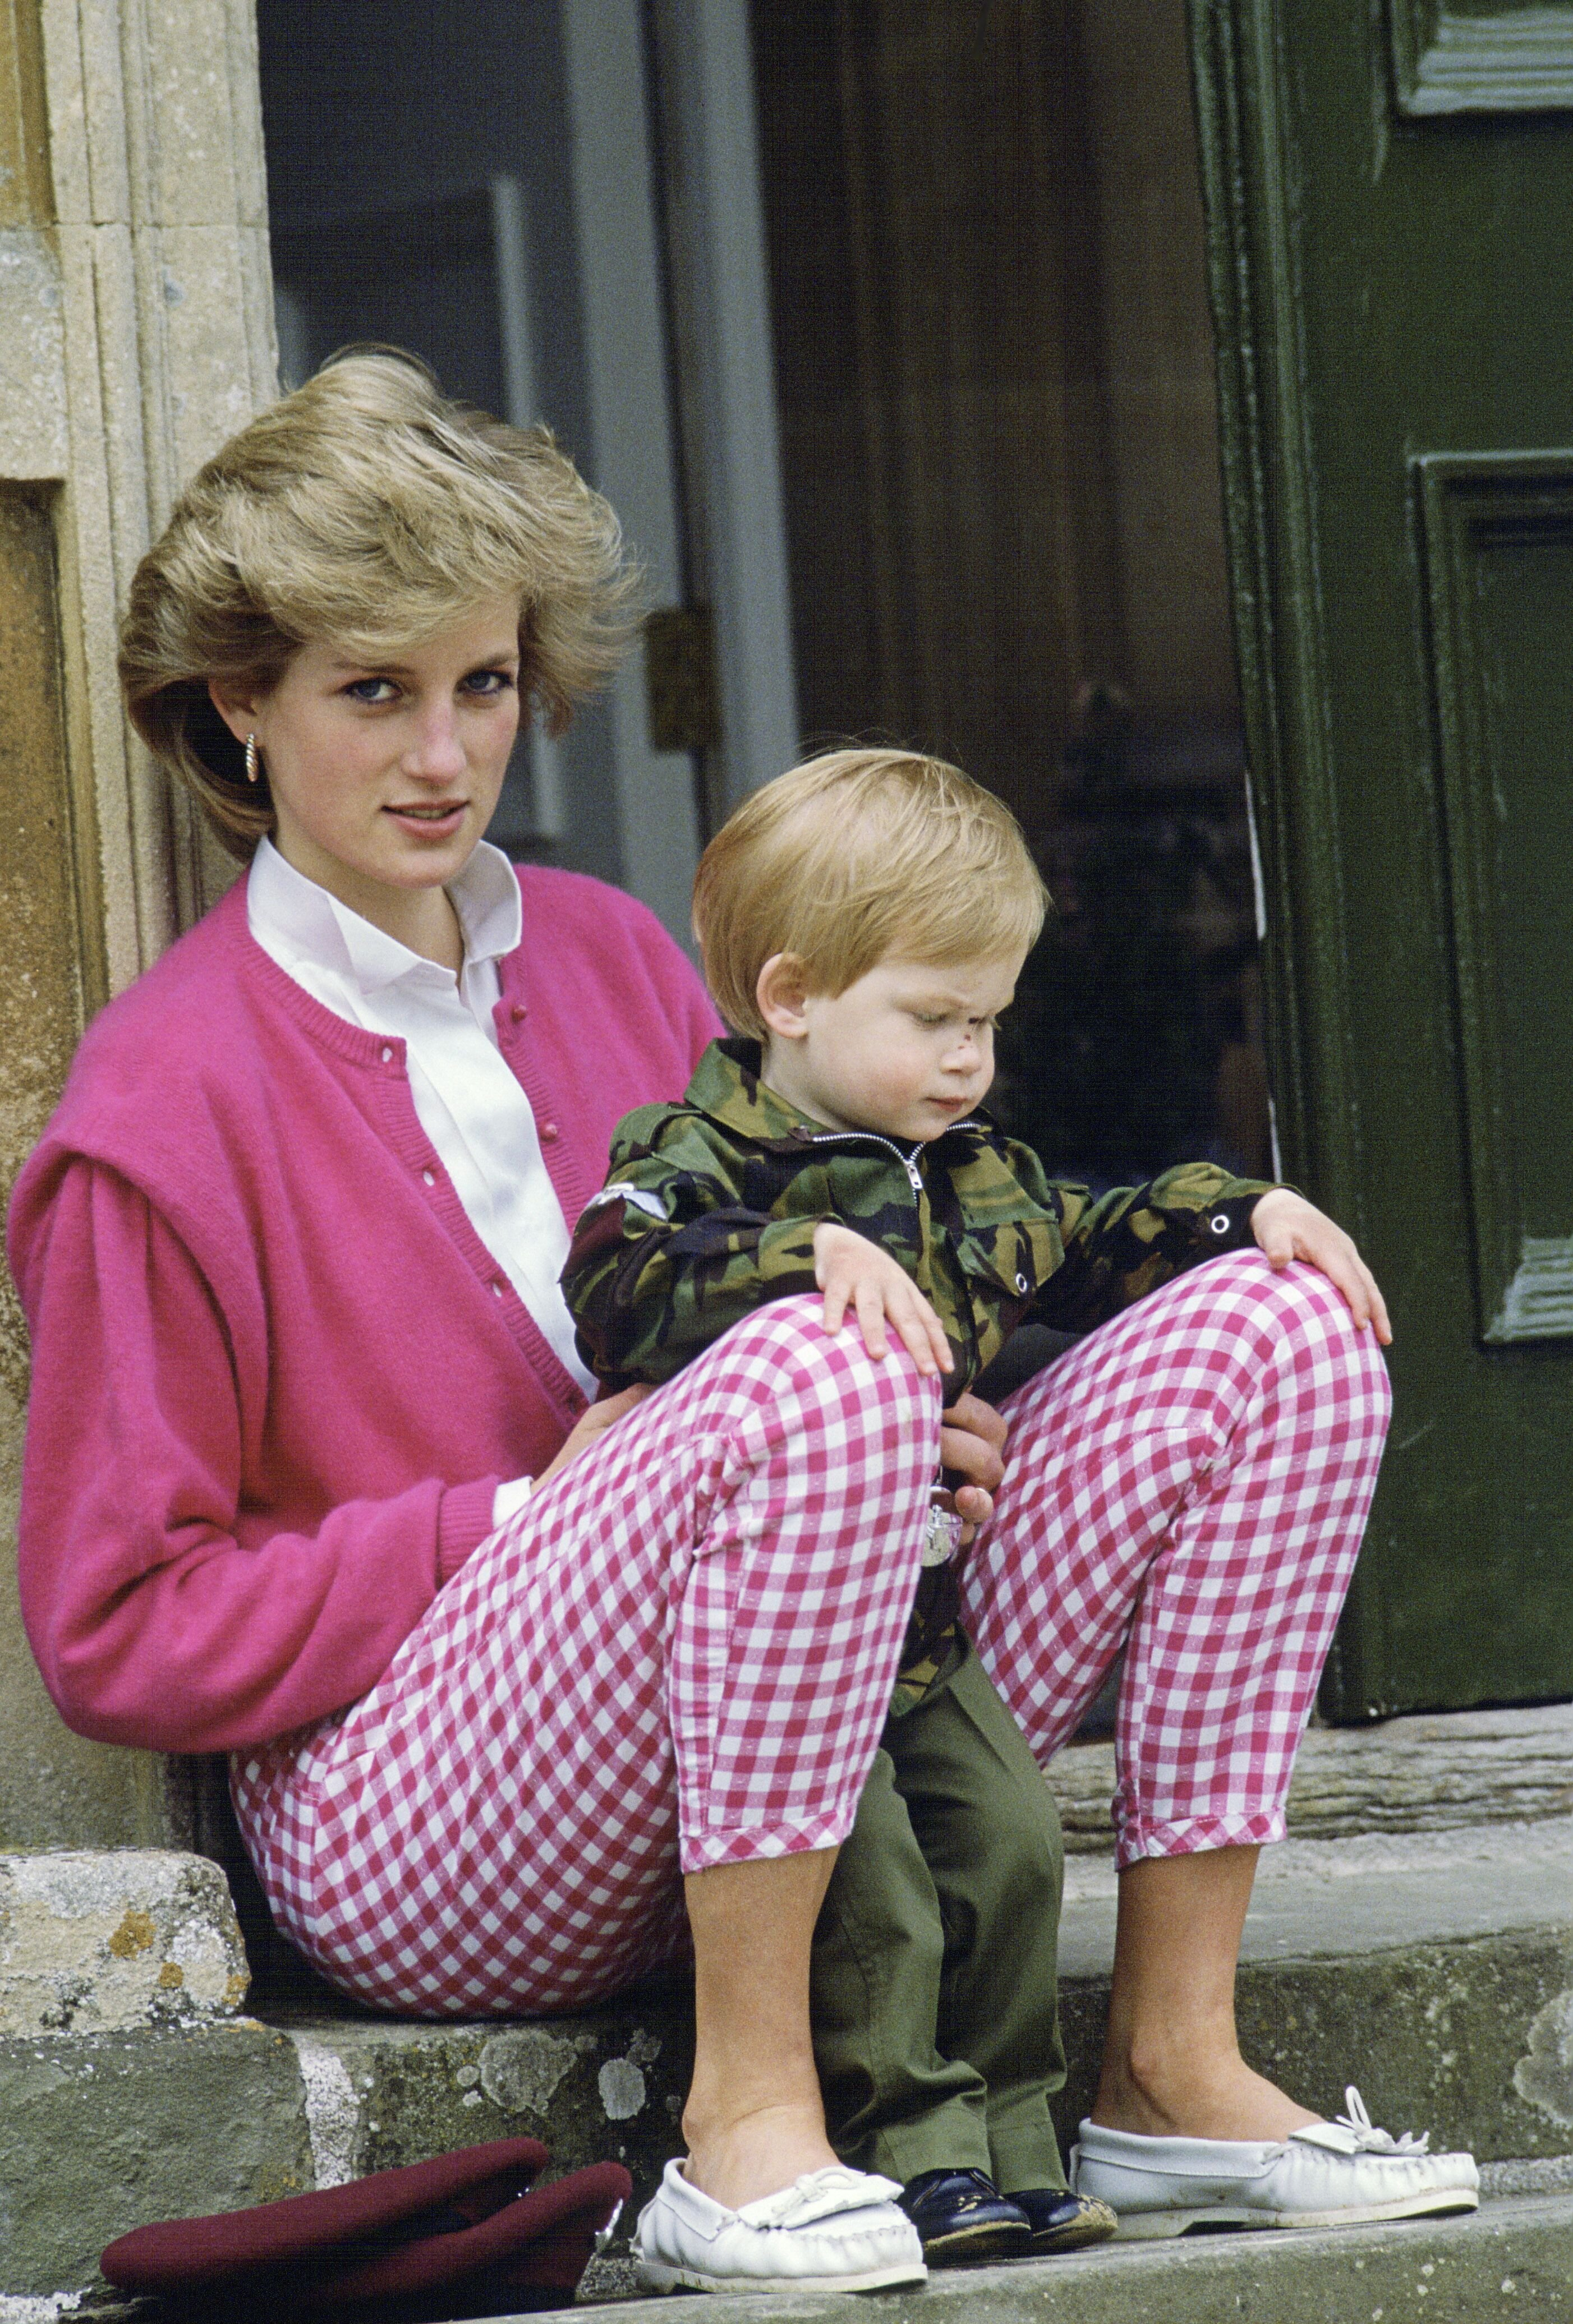 Princess Diana Sitting Outside Highgrove With Her Son Harry. | Source: Getty Images